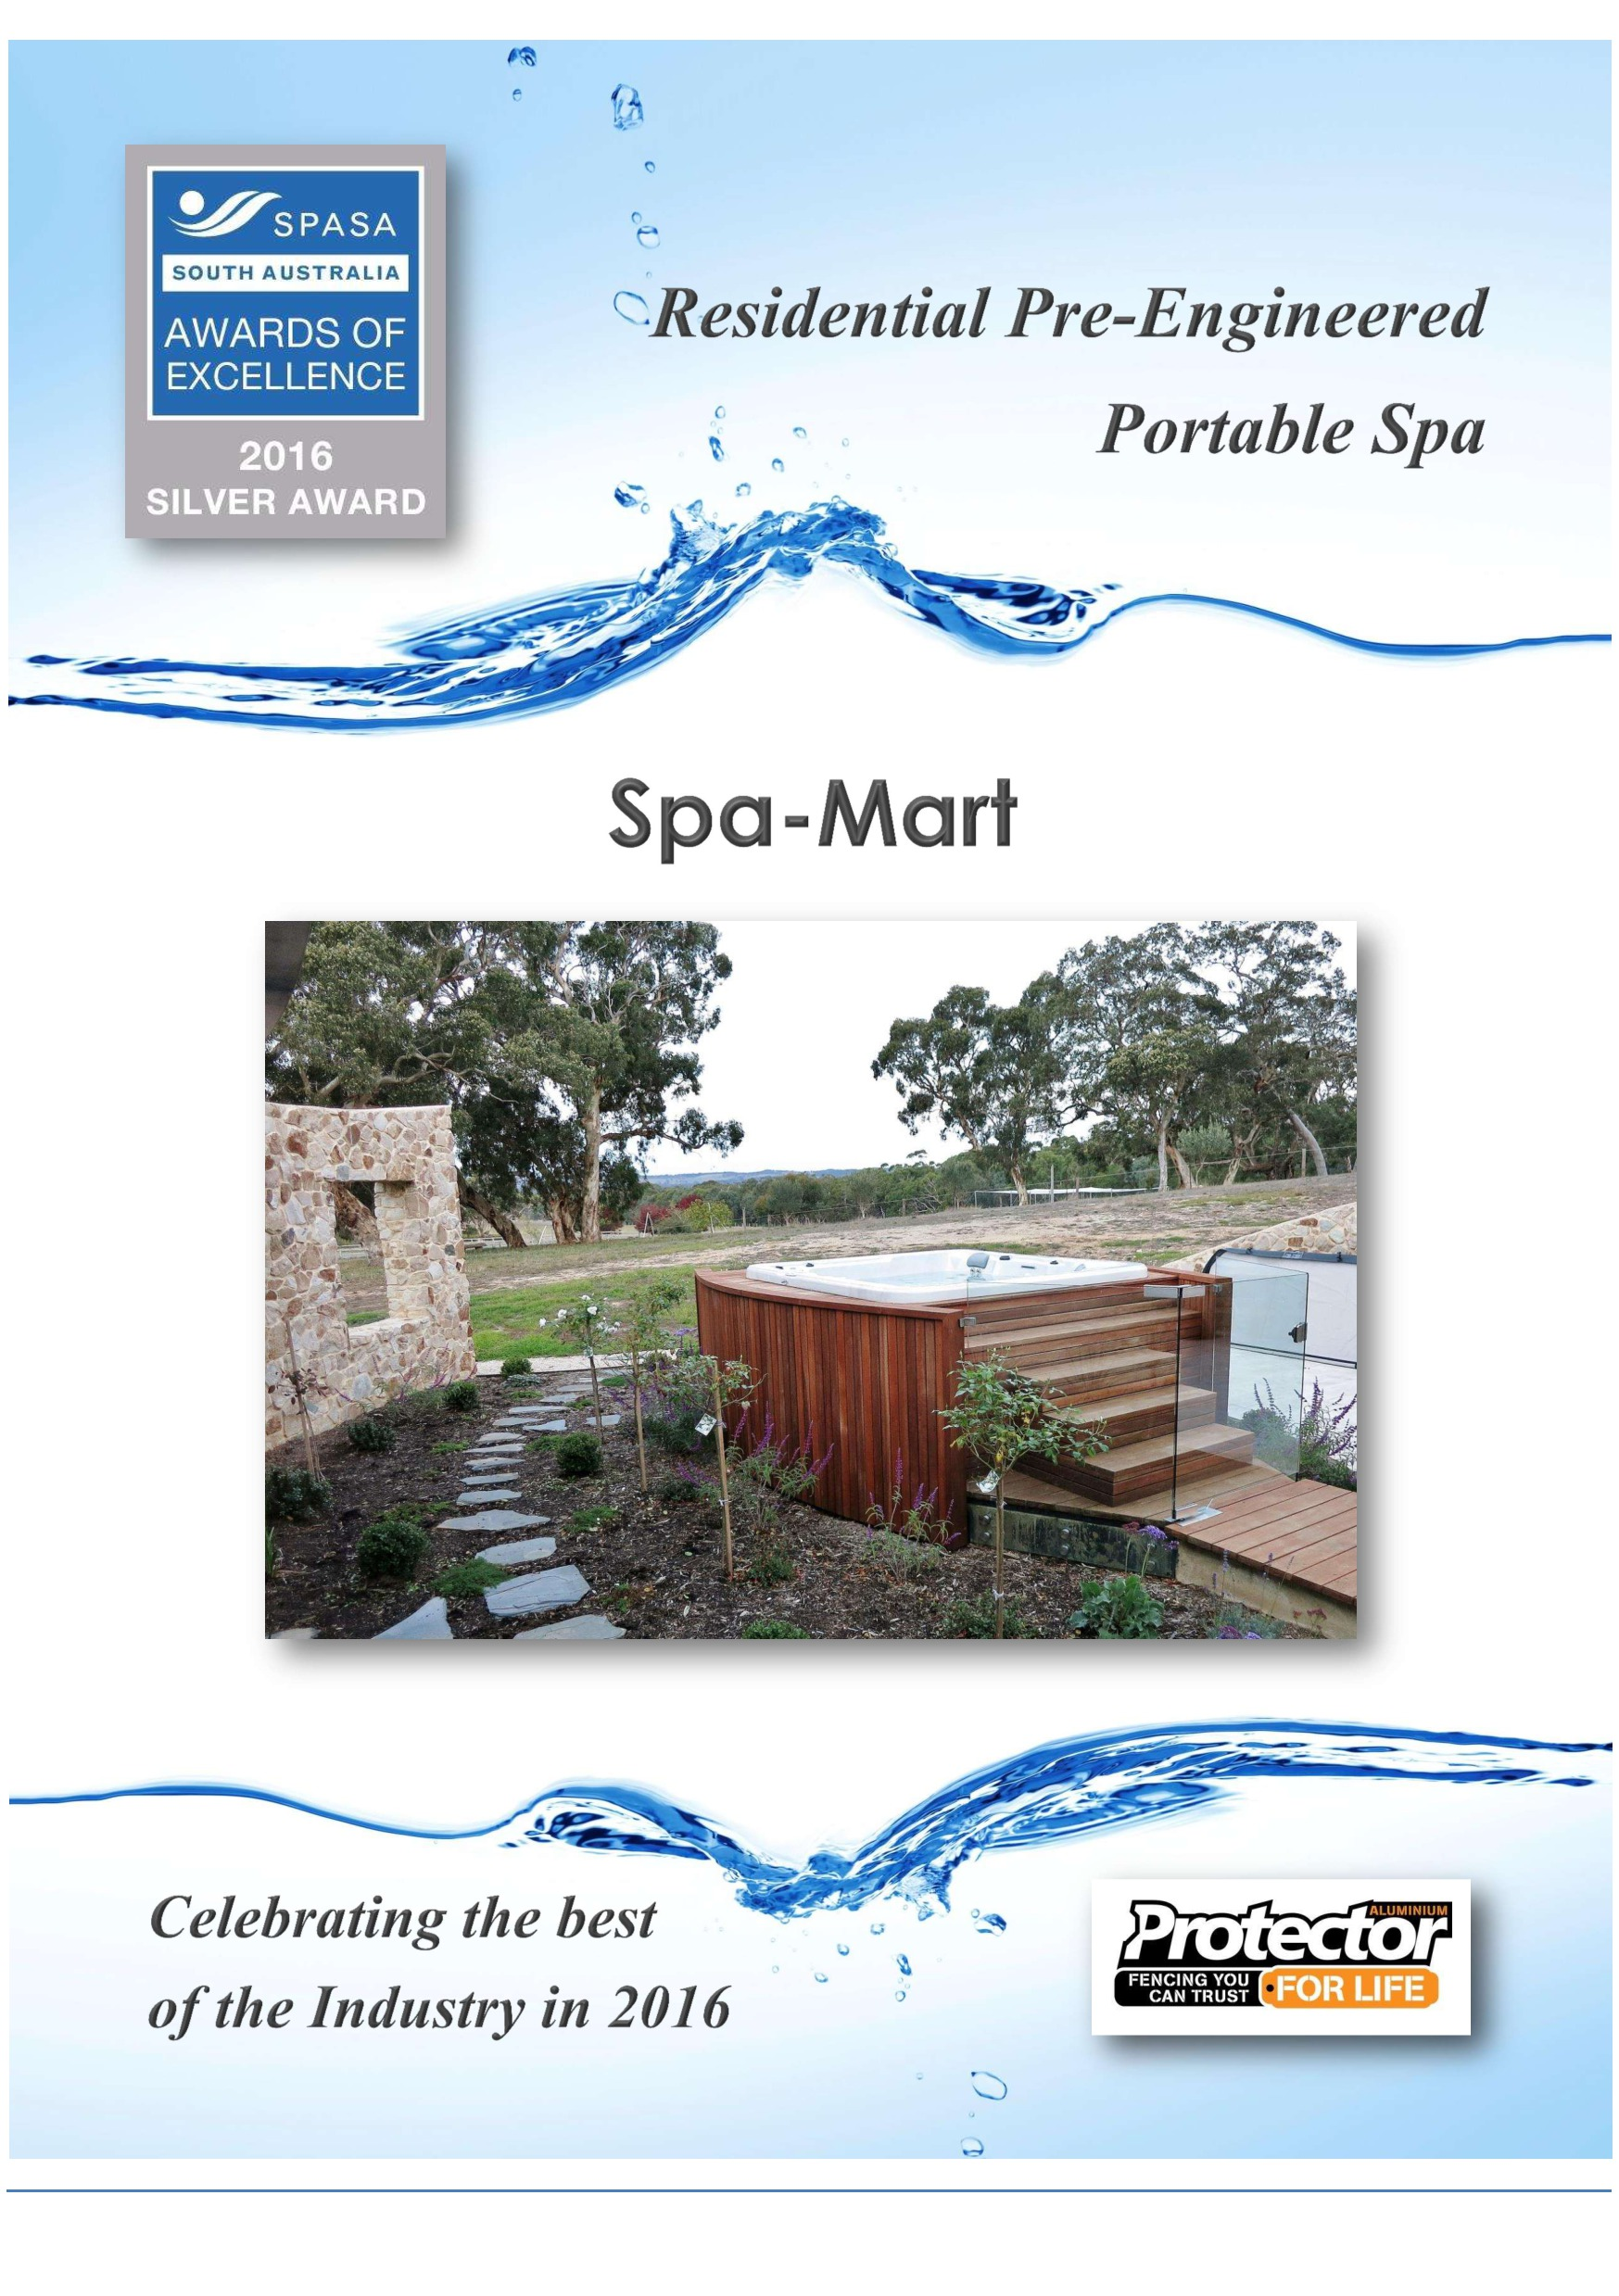 Residential Pre-Engineered Portable Spa